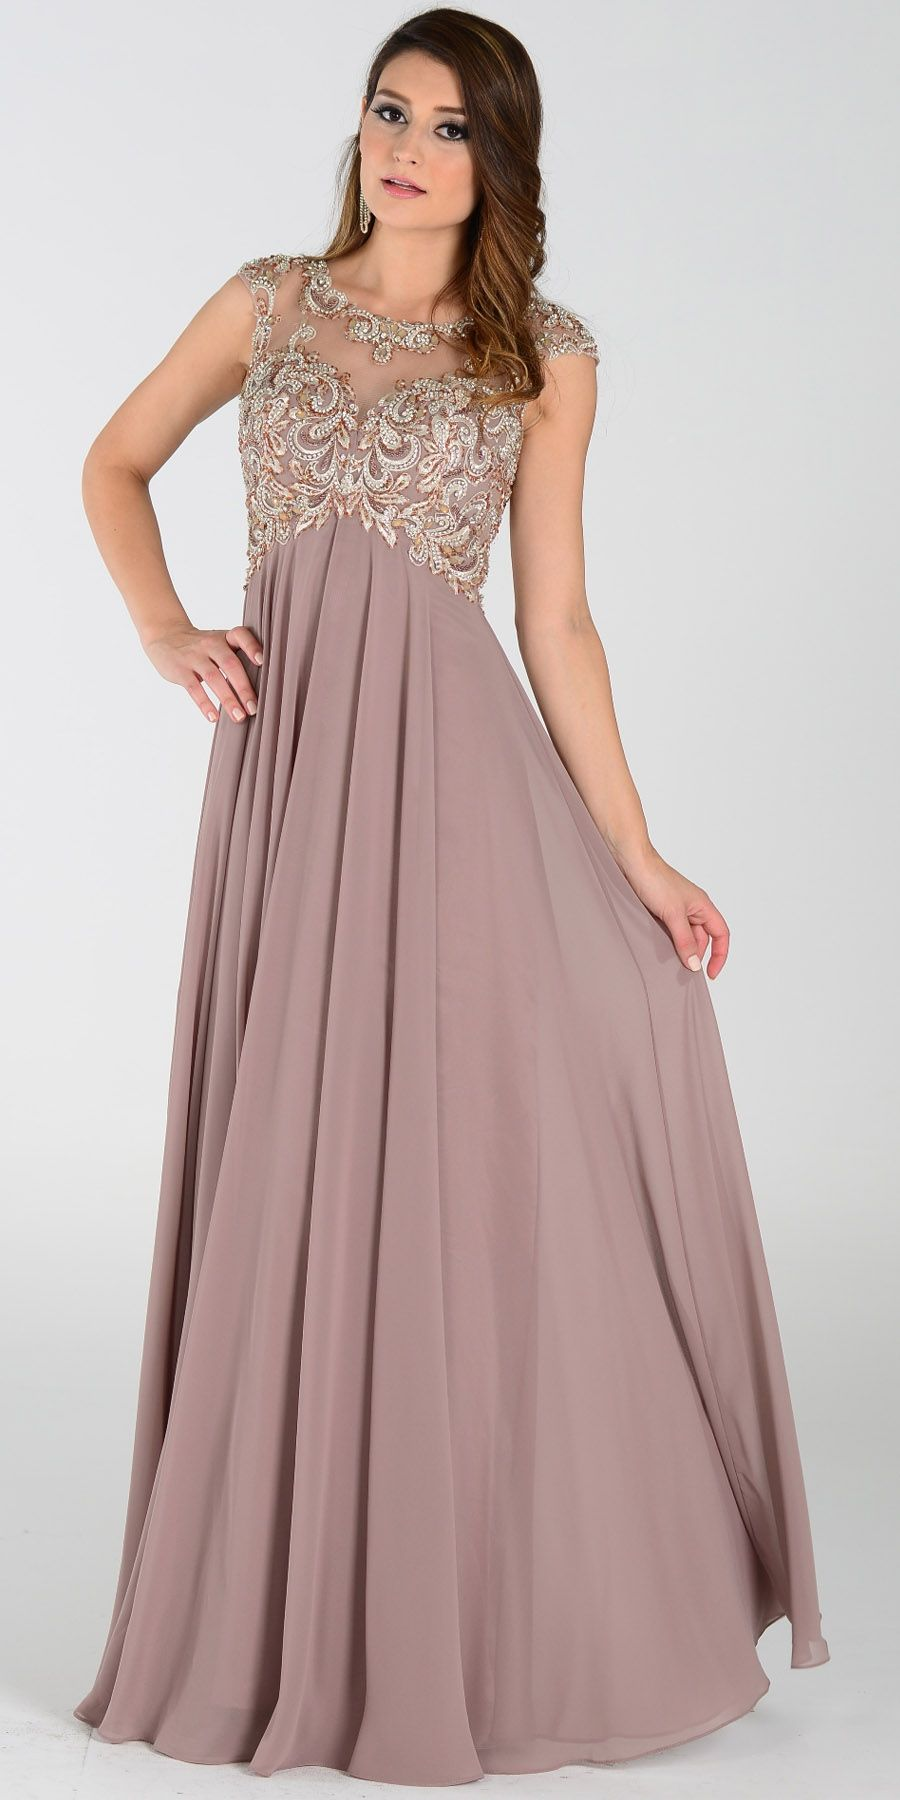 Poly USA 7354 Empire Waist Long Chiffon Mocha Gown Cap Sleeve. Ball Gown  Prom ...